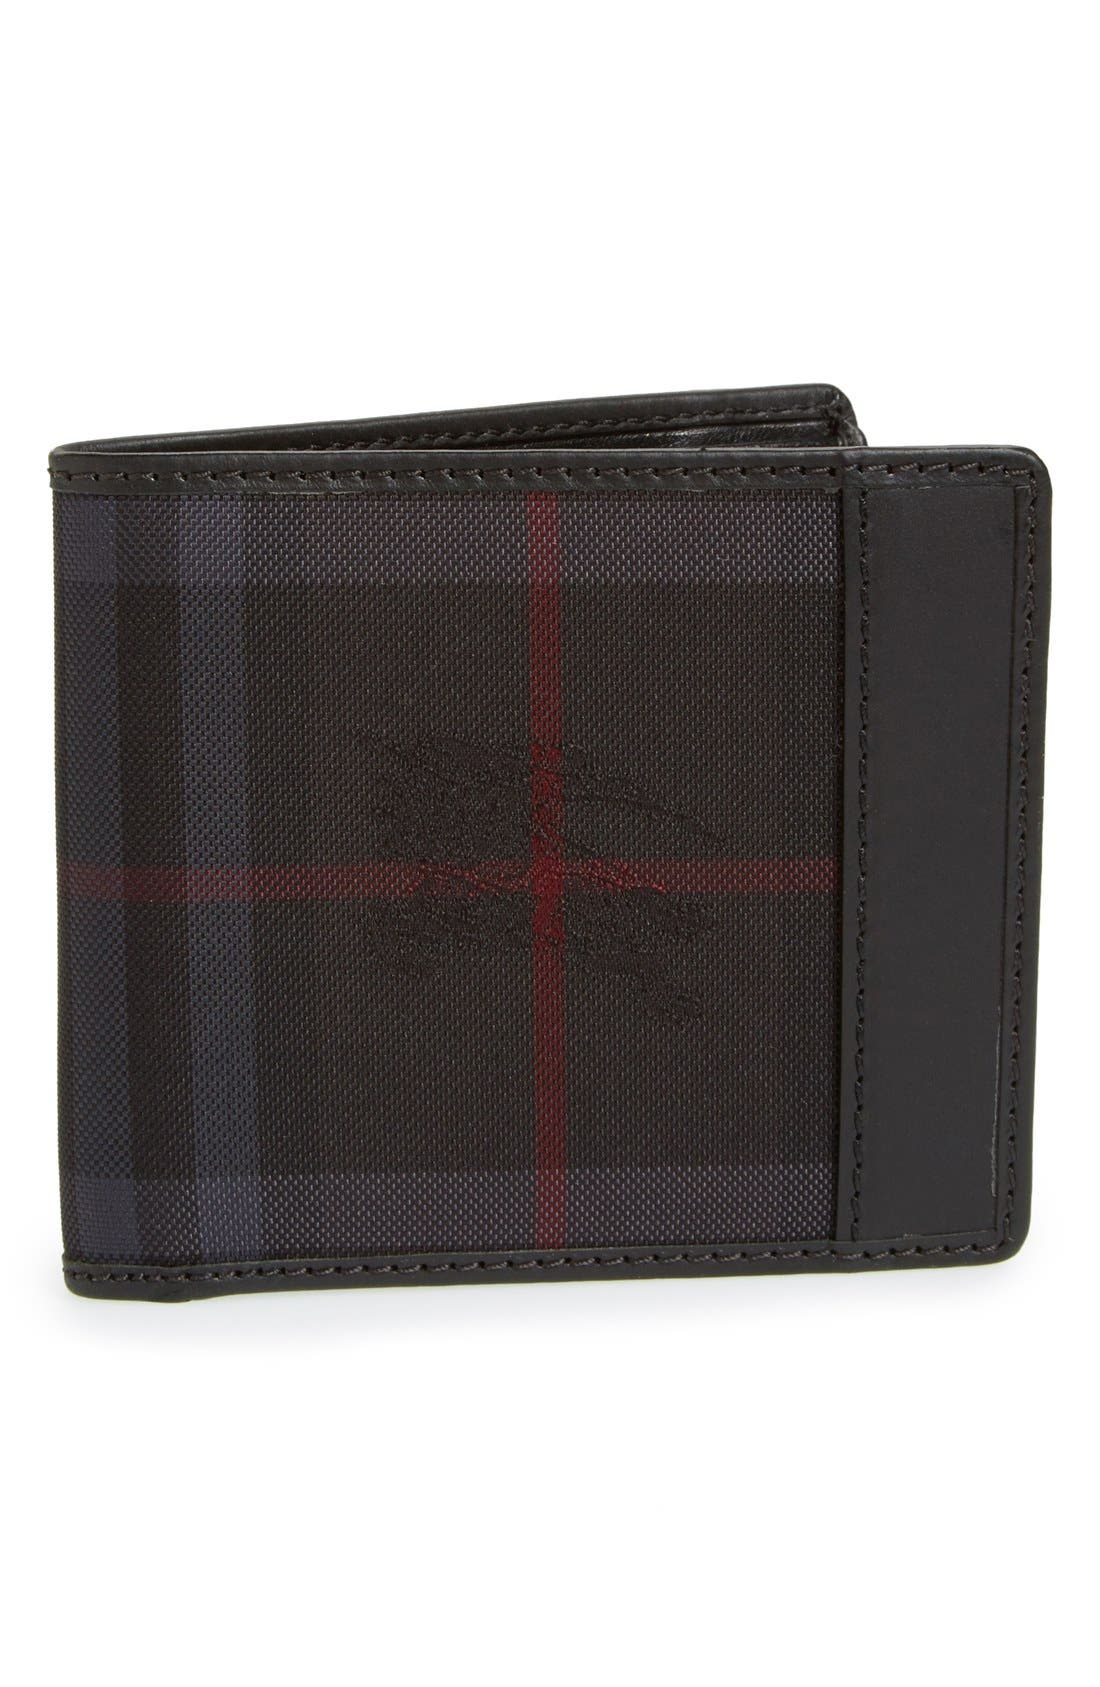 Burberry Horseferry Check Billfold Wallet